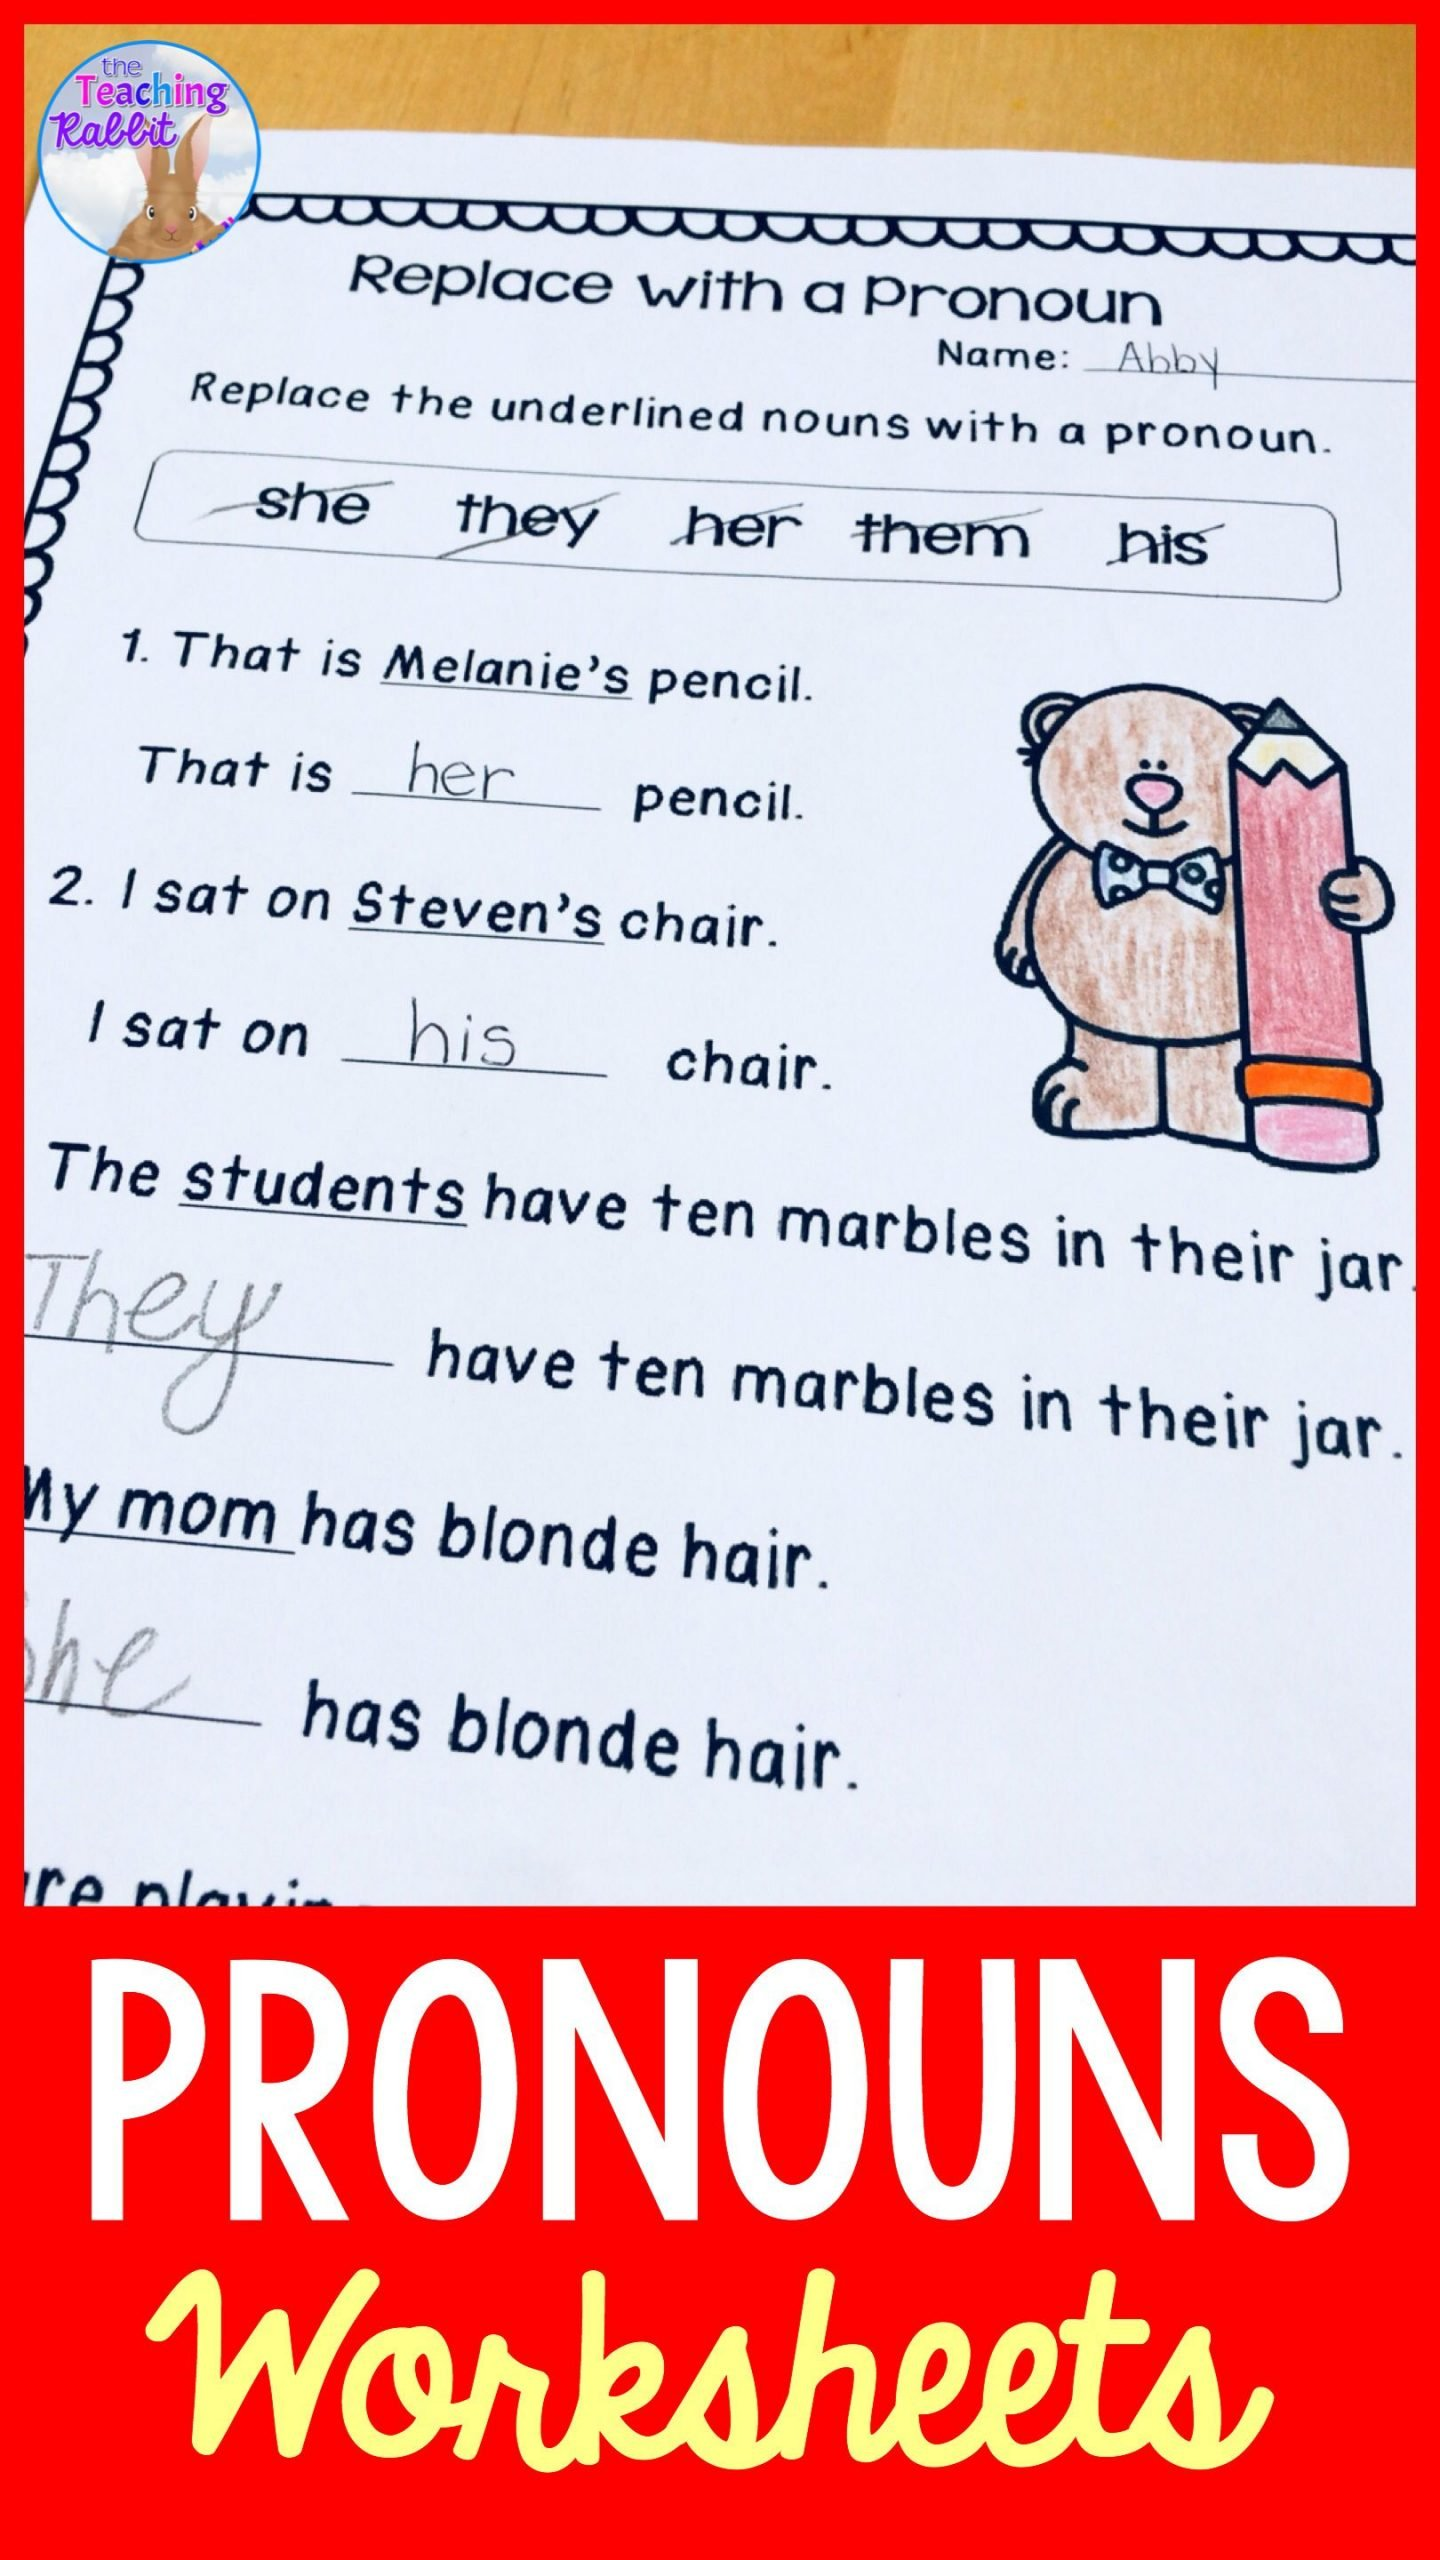 Pronoun Worksheet for 2nd Grade these Pronouns Activity Worksheets are Best for Second Grade